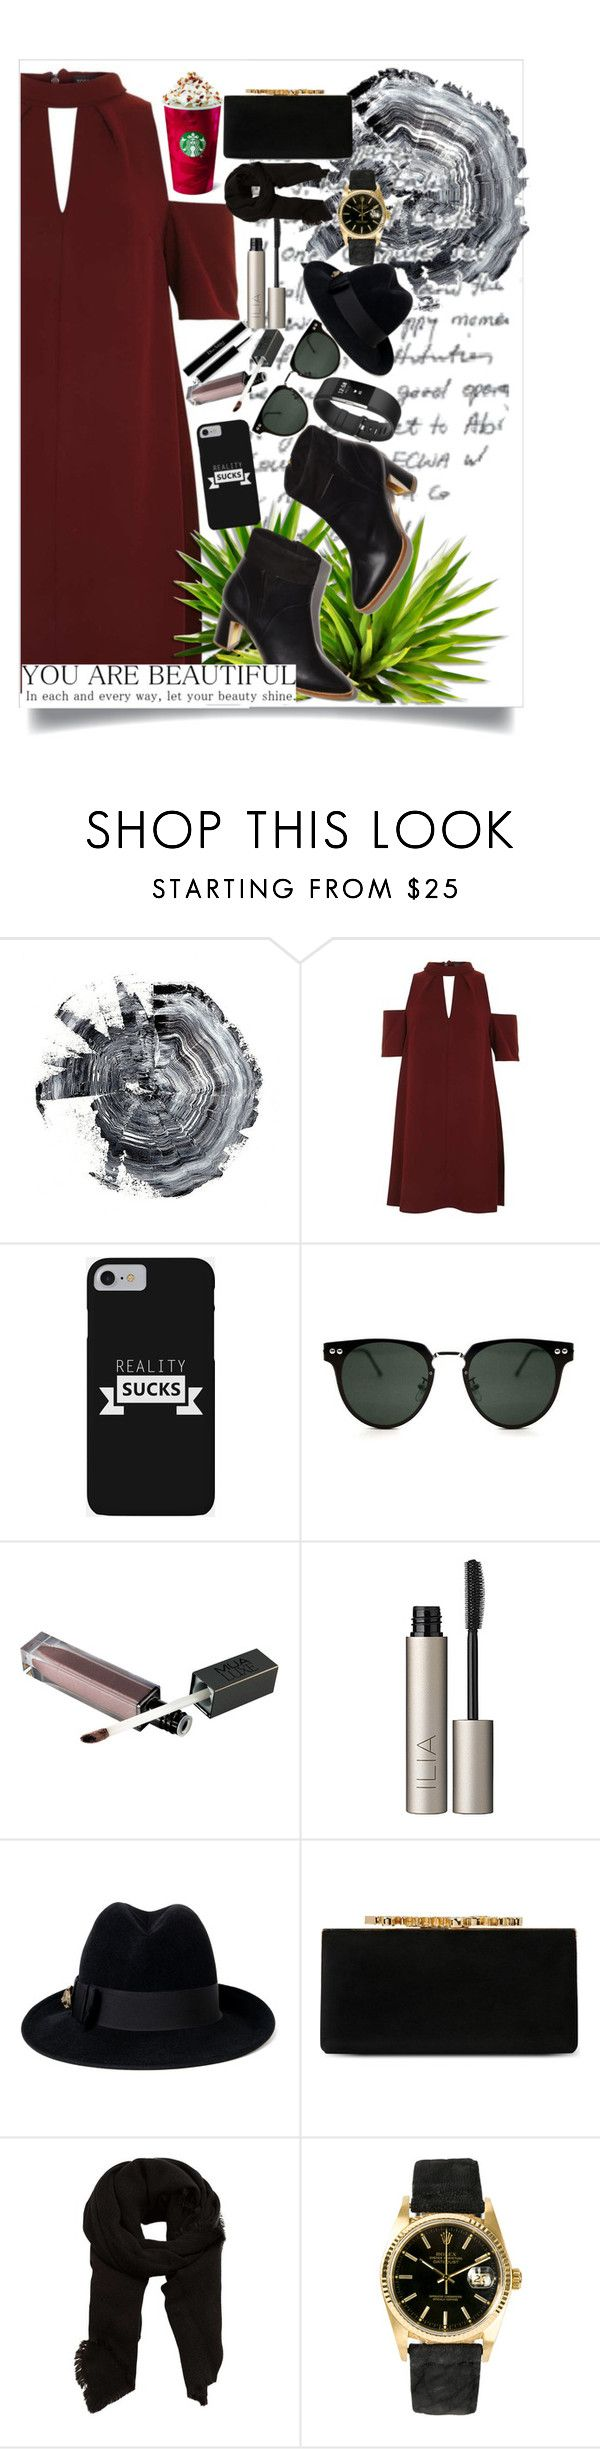 """You are beatiful"" by marii-96-1 ❤ liked on Polyvore featuring Topshop, Spitfire, Fitbit, Ilia, Gucci, Jimmy Choo, MANGO and Rolex"